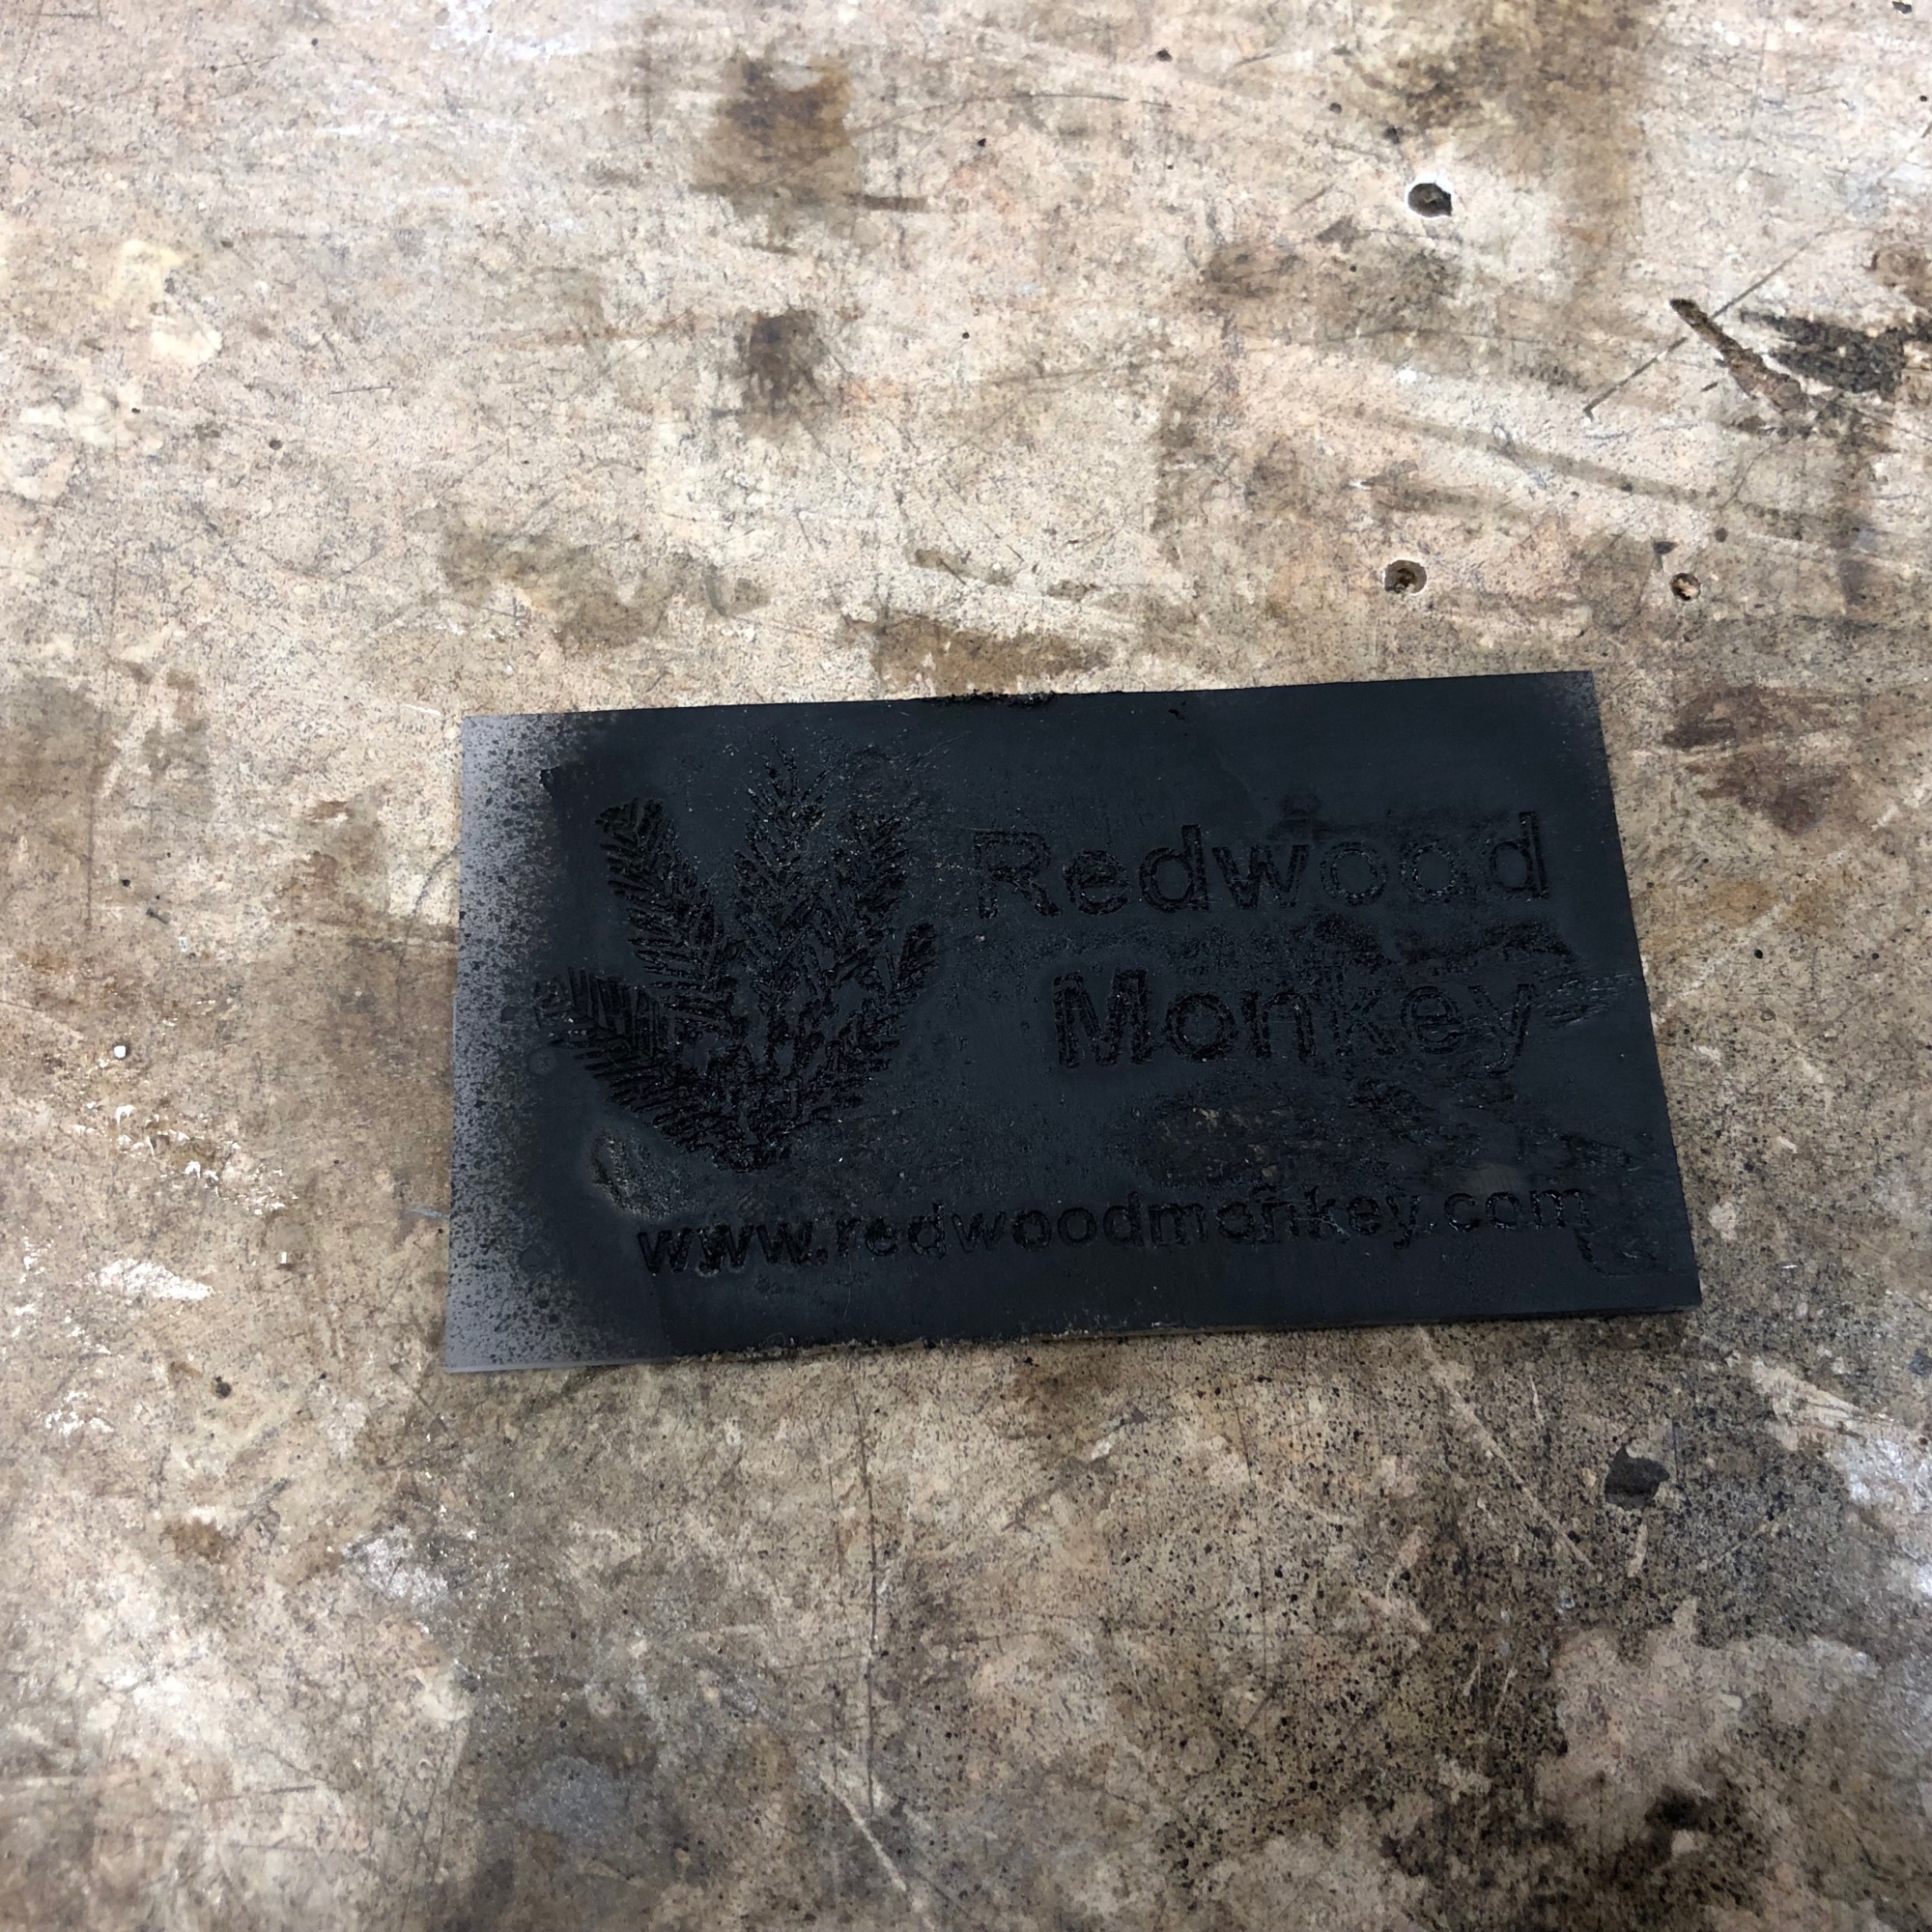 epoxy business card spray painted black